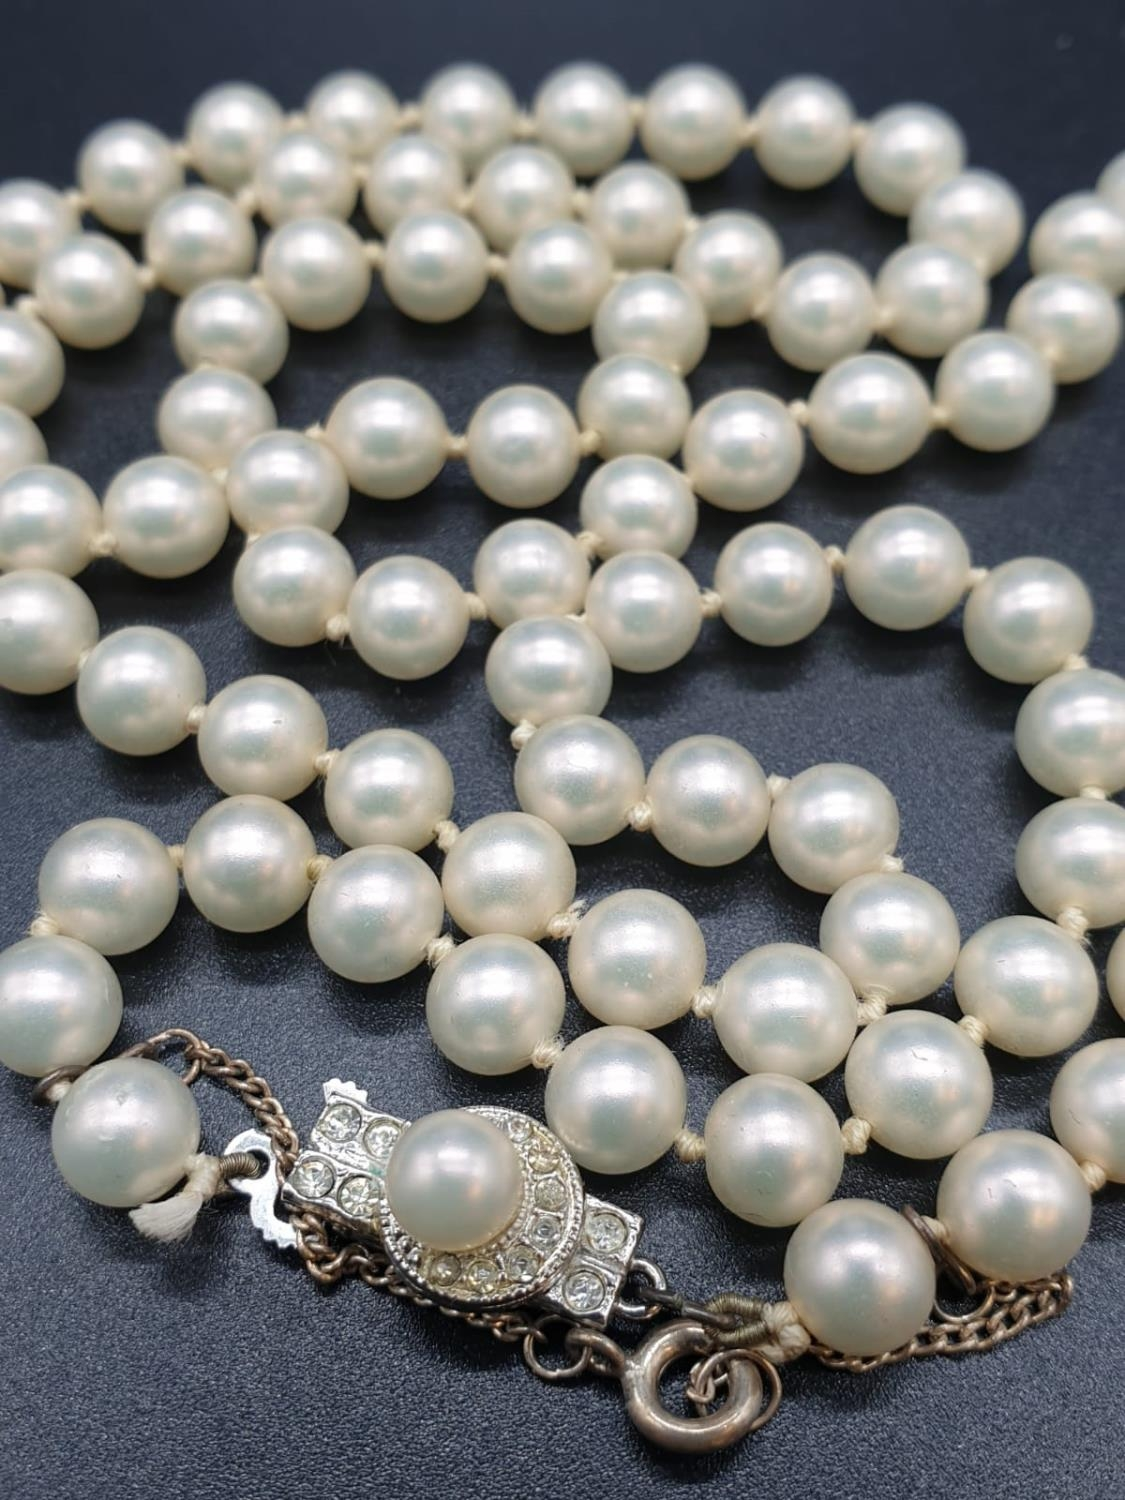 A 60cm String or Cultured Pearls 30g - Image 2 of 5